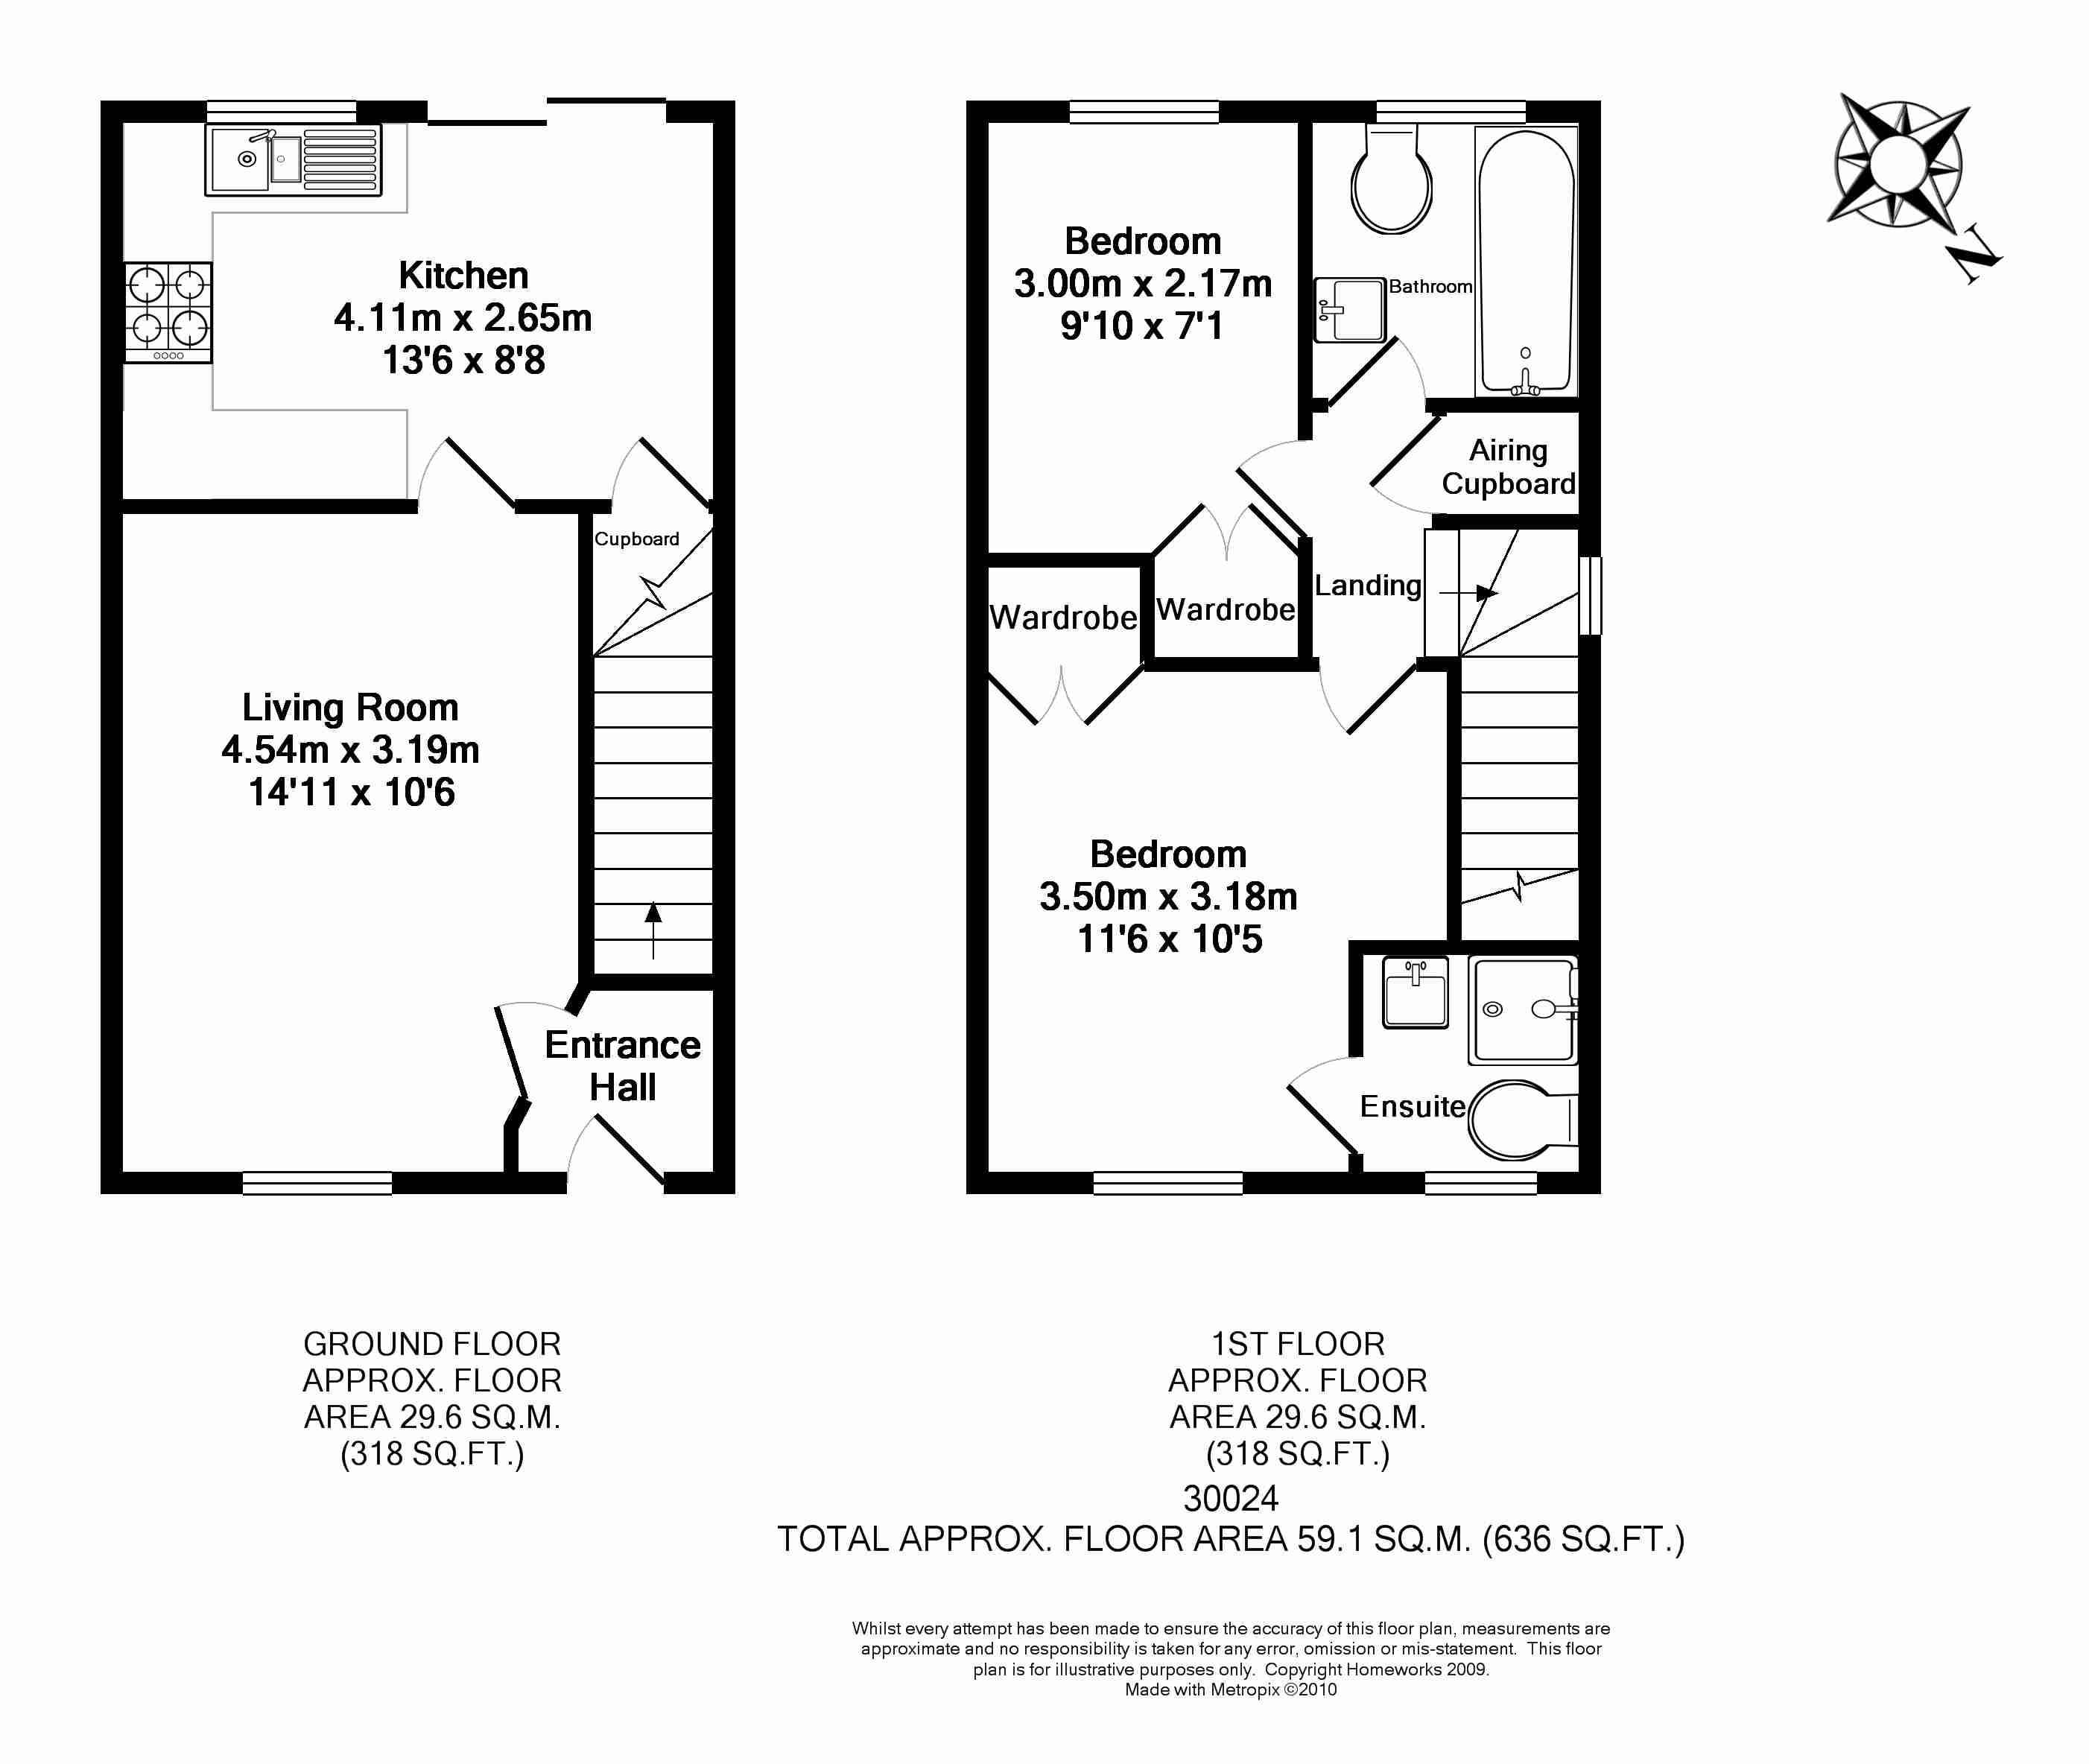 Uk Council House Floor Plans – Council House Floor Plans